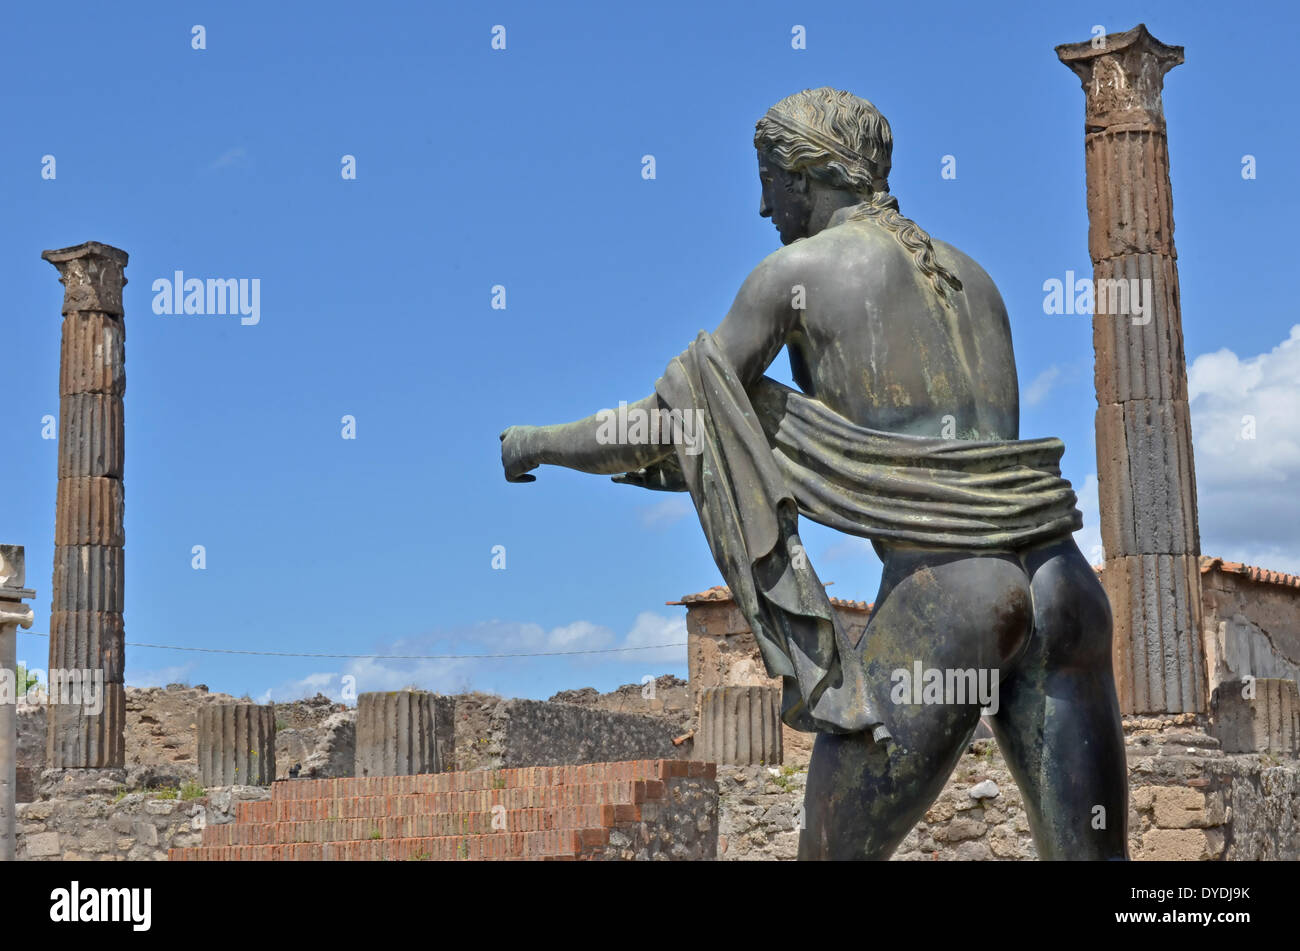 Italy Europe roman ancient Rome Pompeii Vesuvius ruins town preserved preservation art history remains architecture eruption - Stock Image